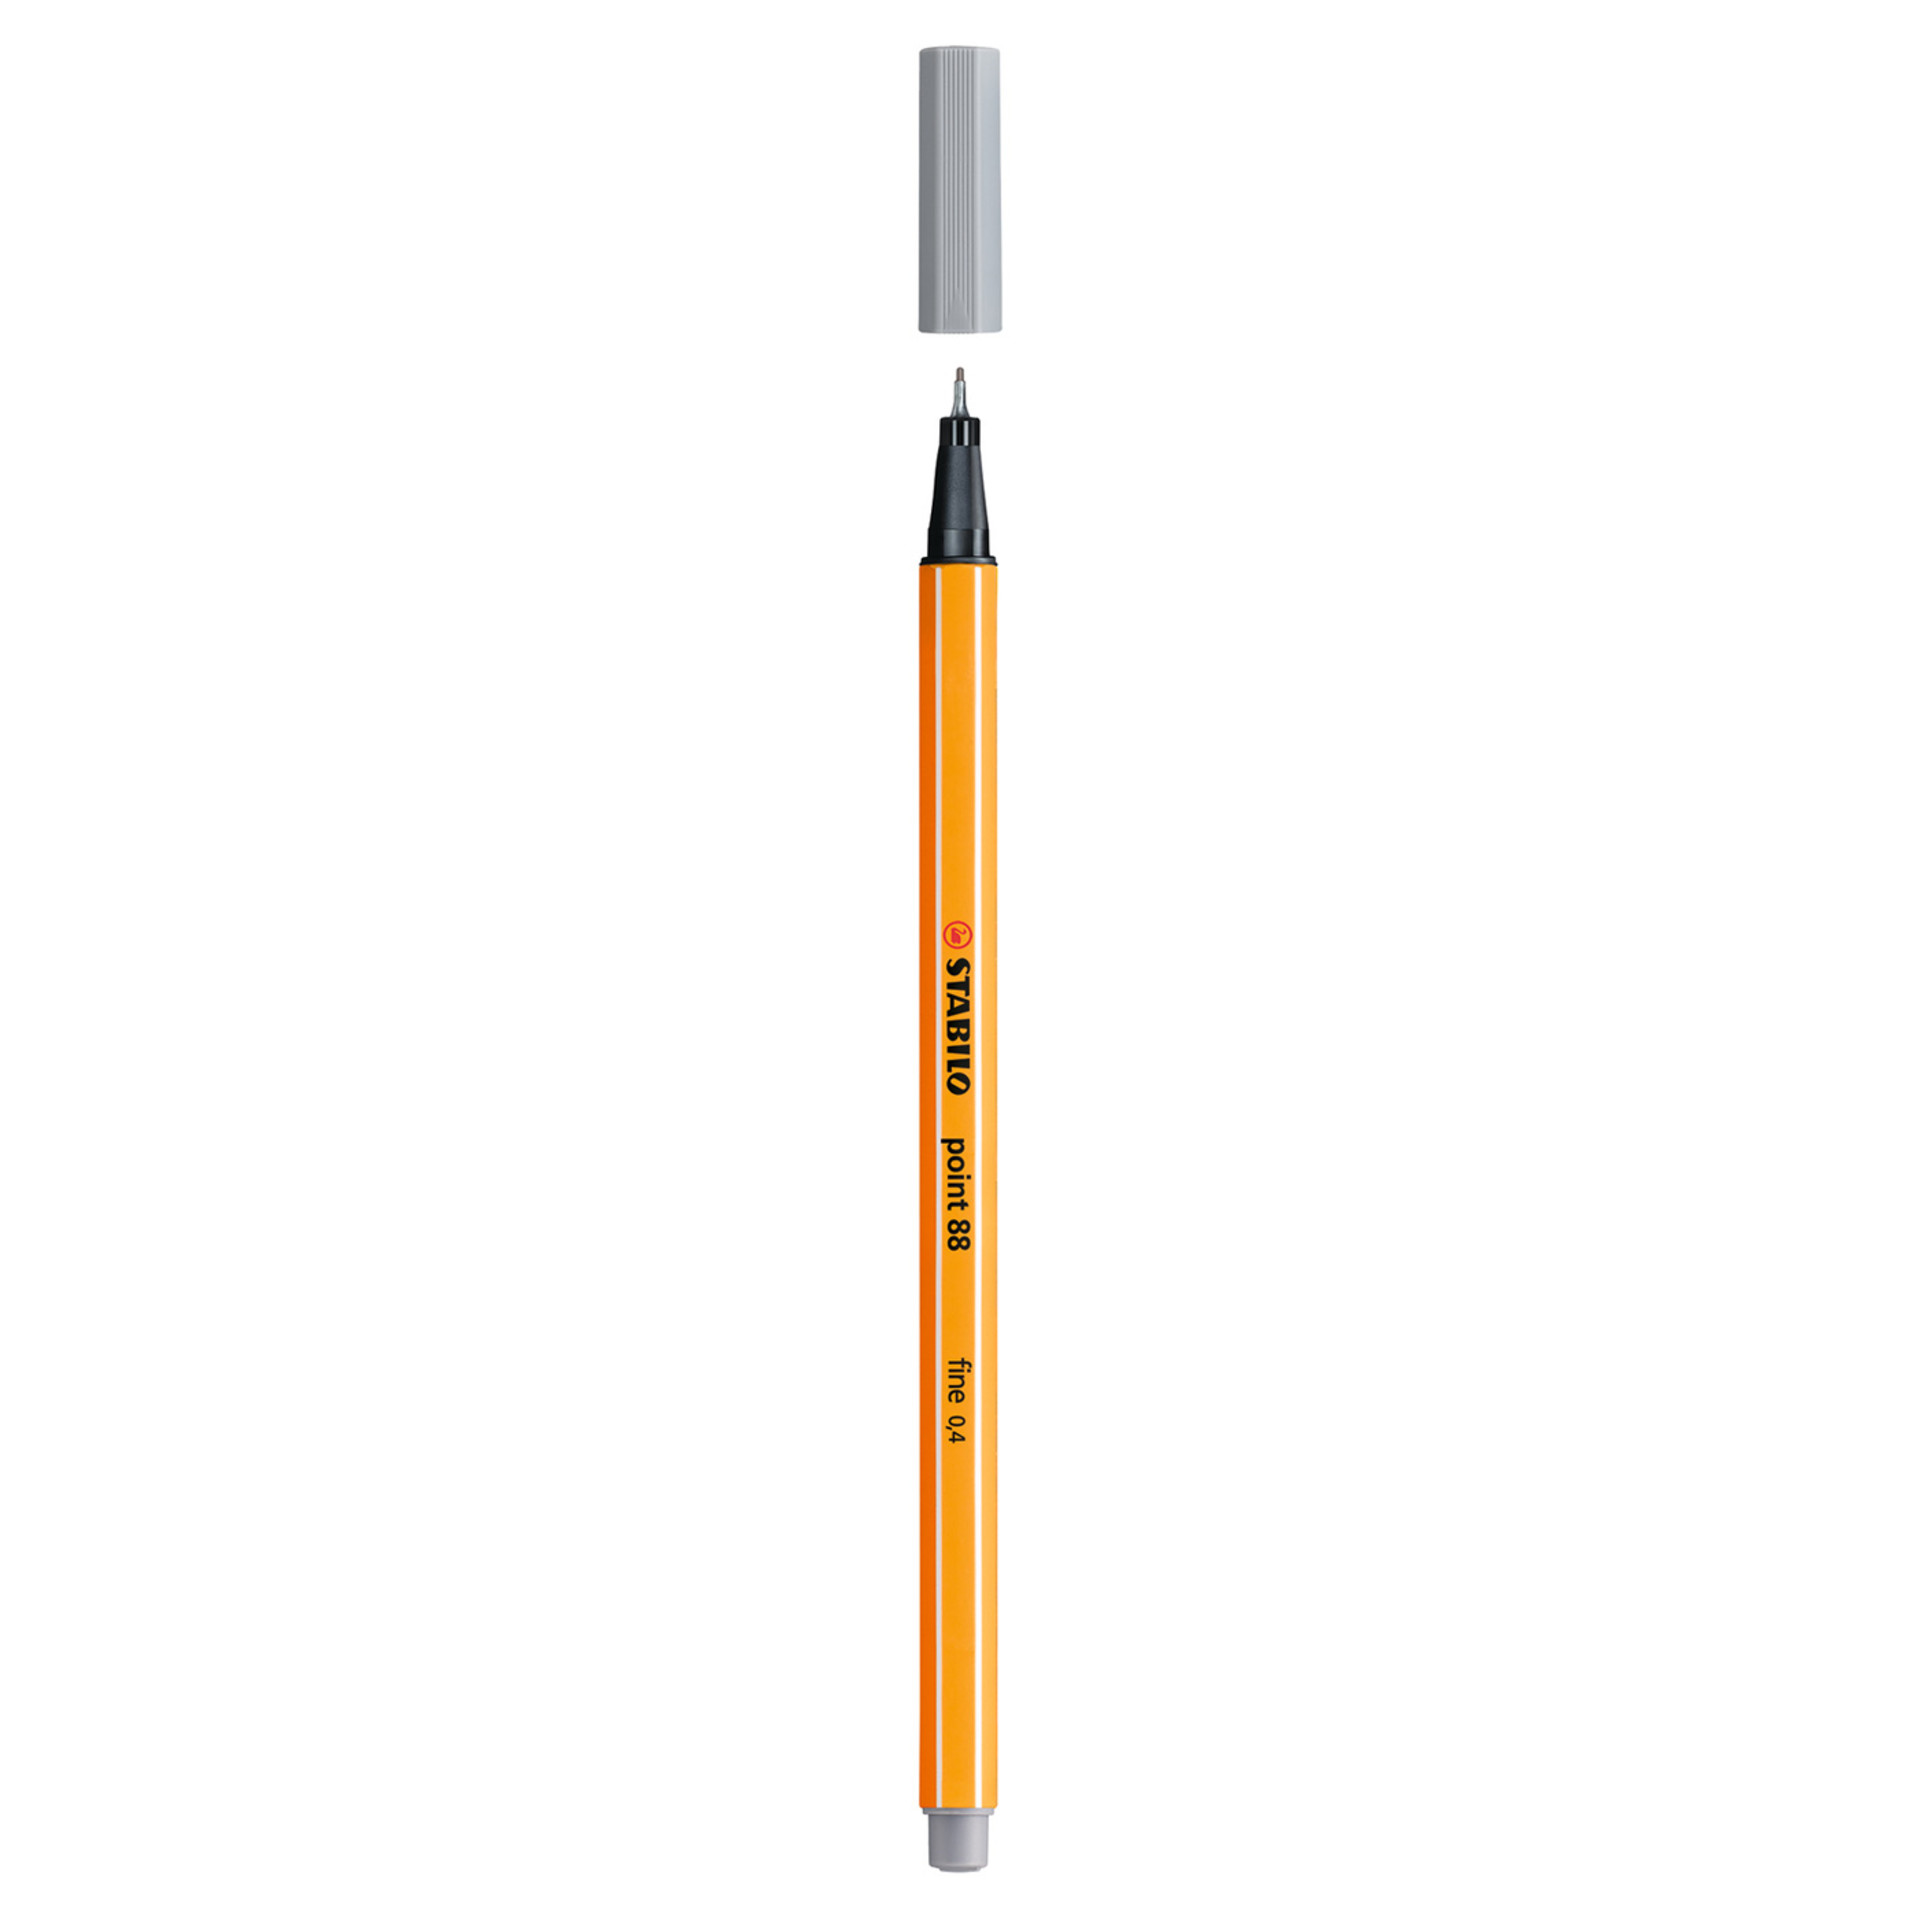 Stabilo Point 88 .4mm Fineliner Pen – Medium Cold Gray